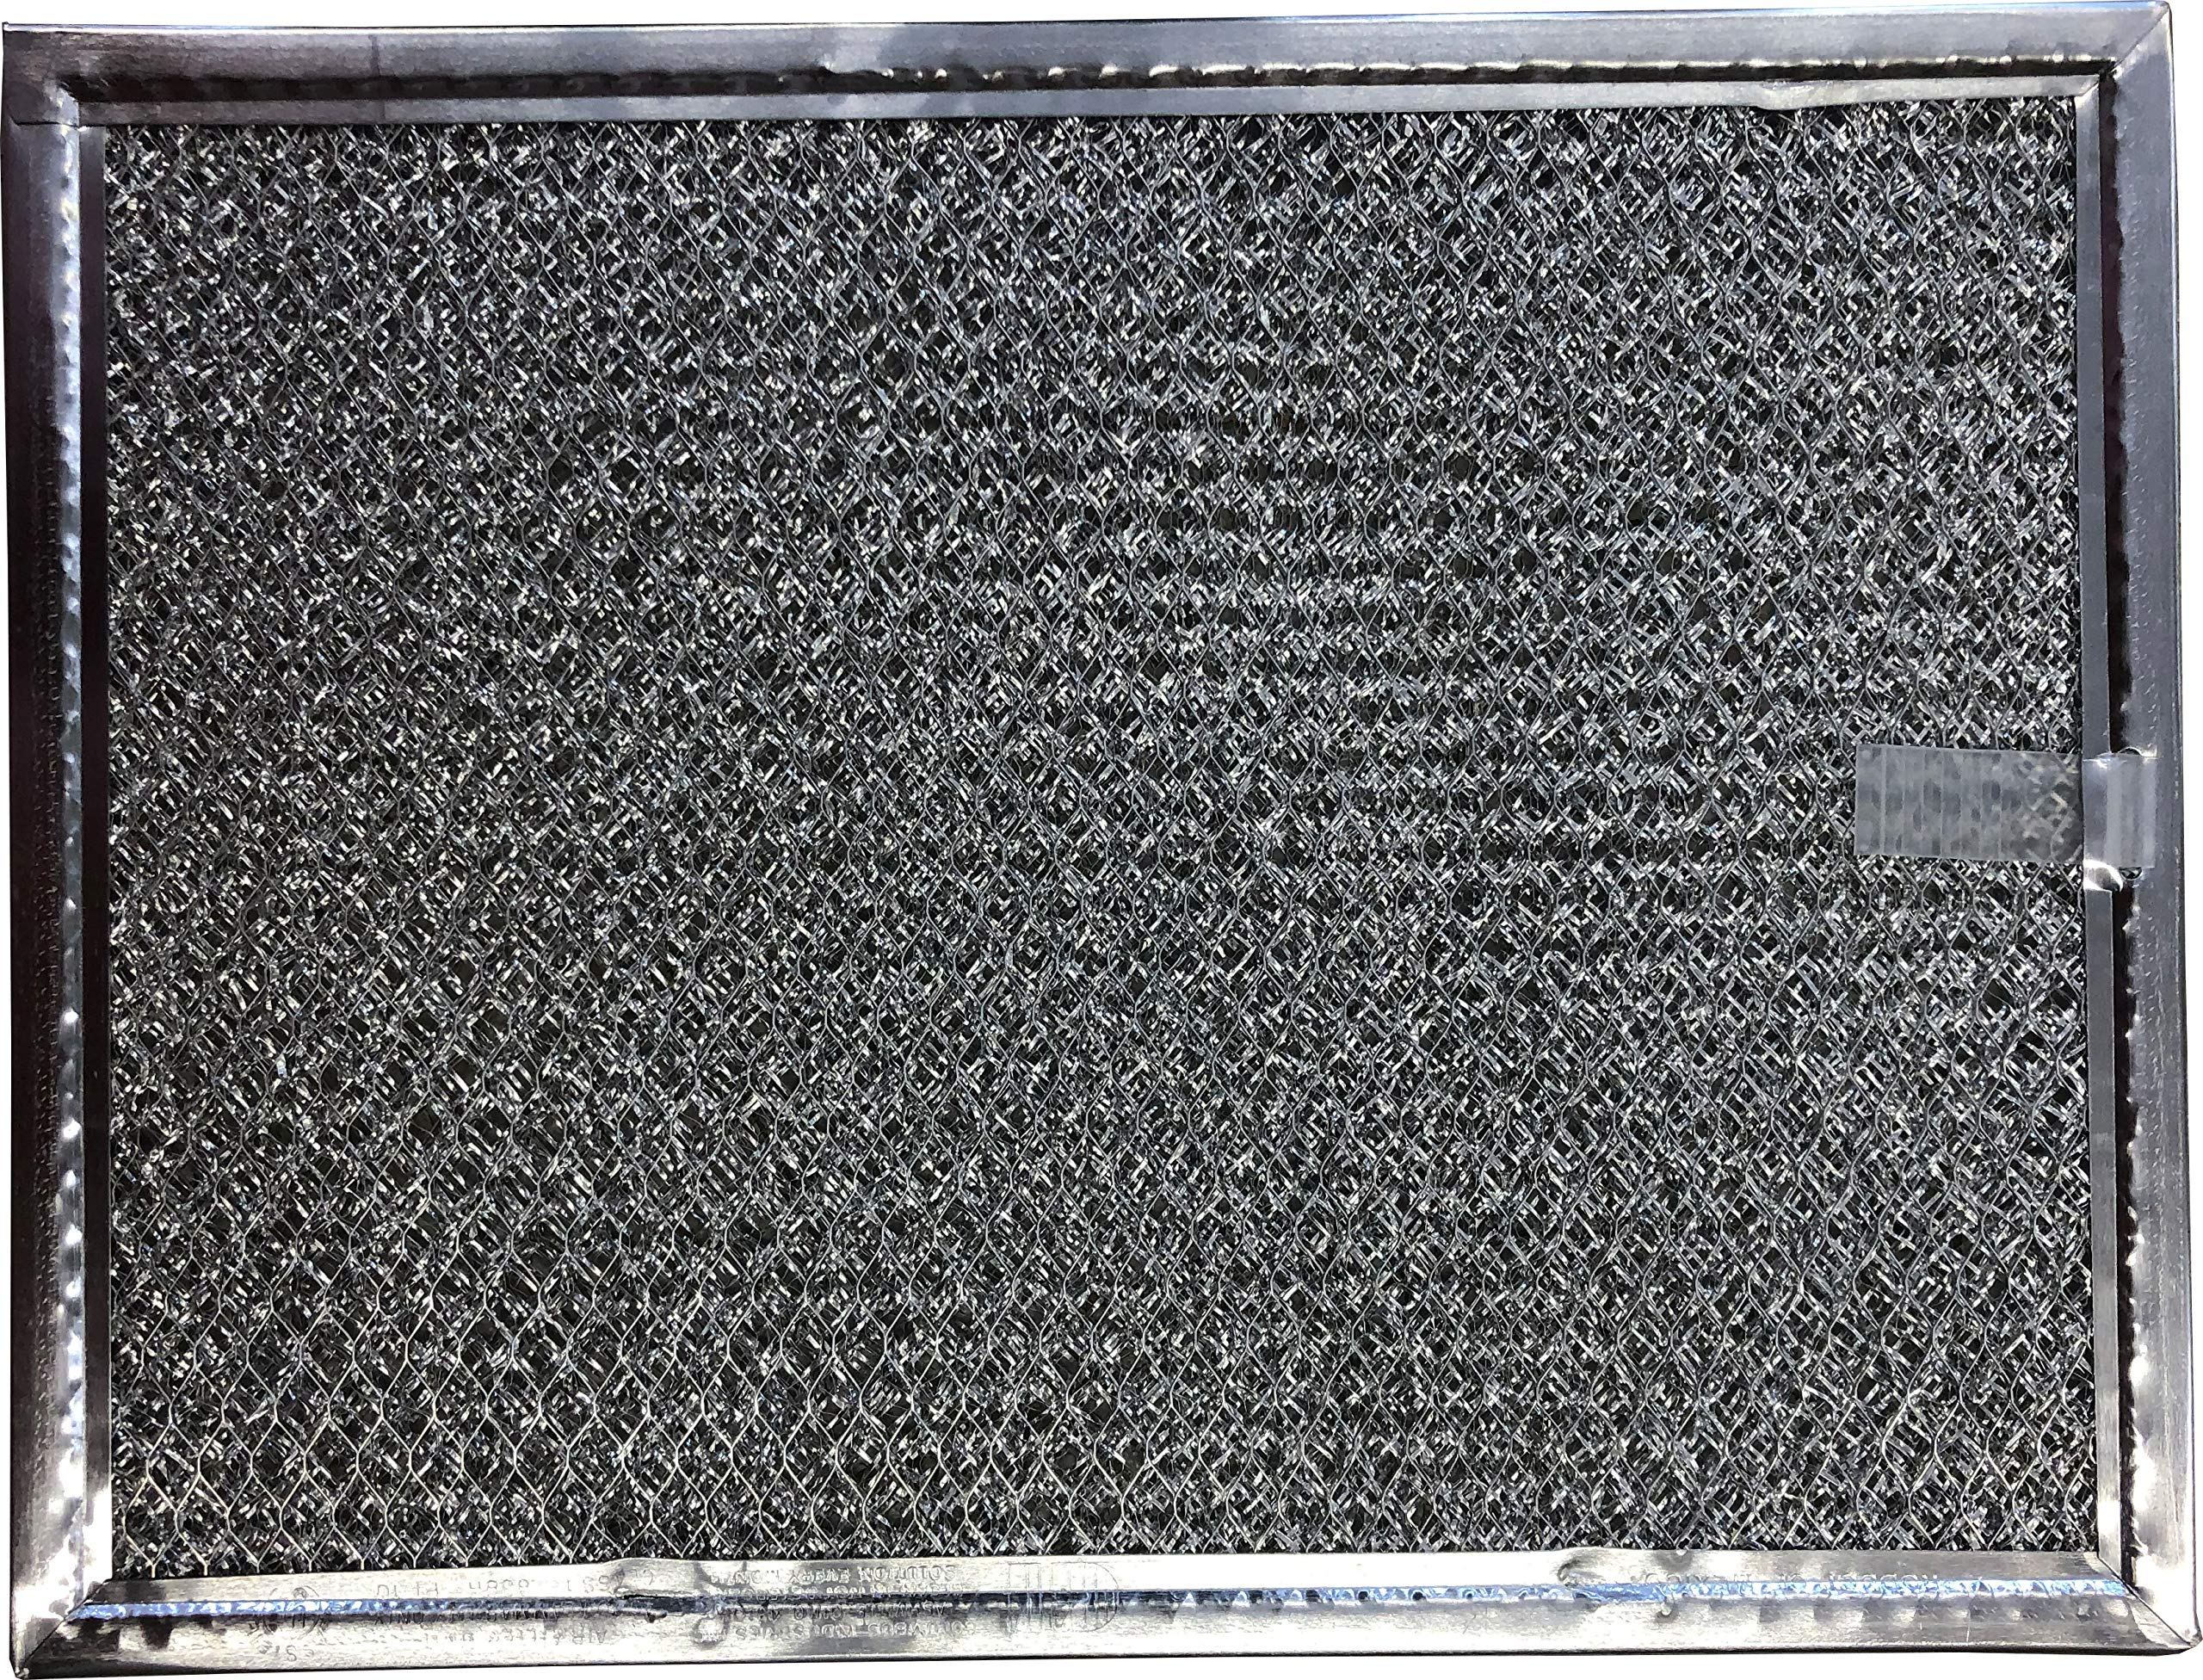 Replacement Aluminum Range Filter Compatible With Dacor 82629,G 8659,RHF0612   6 x 9 3/4 x 3/32 (PT